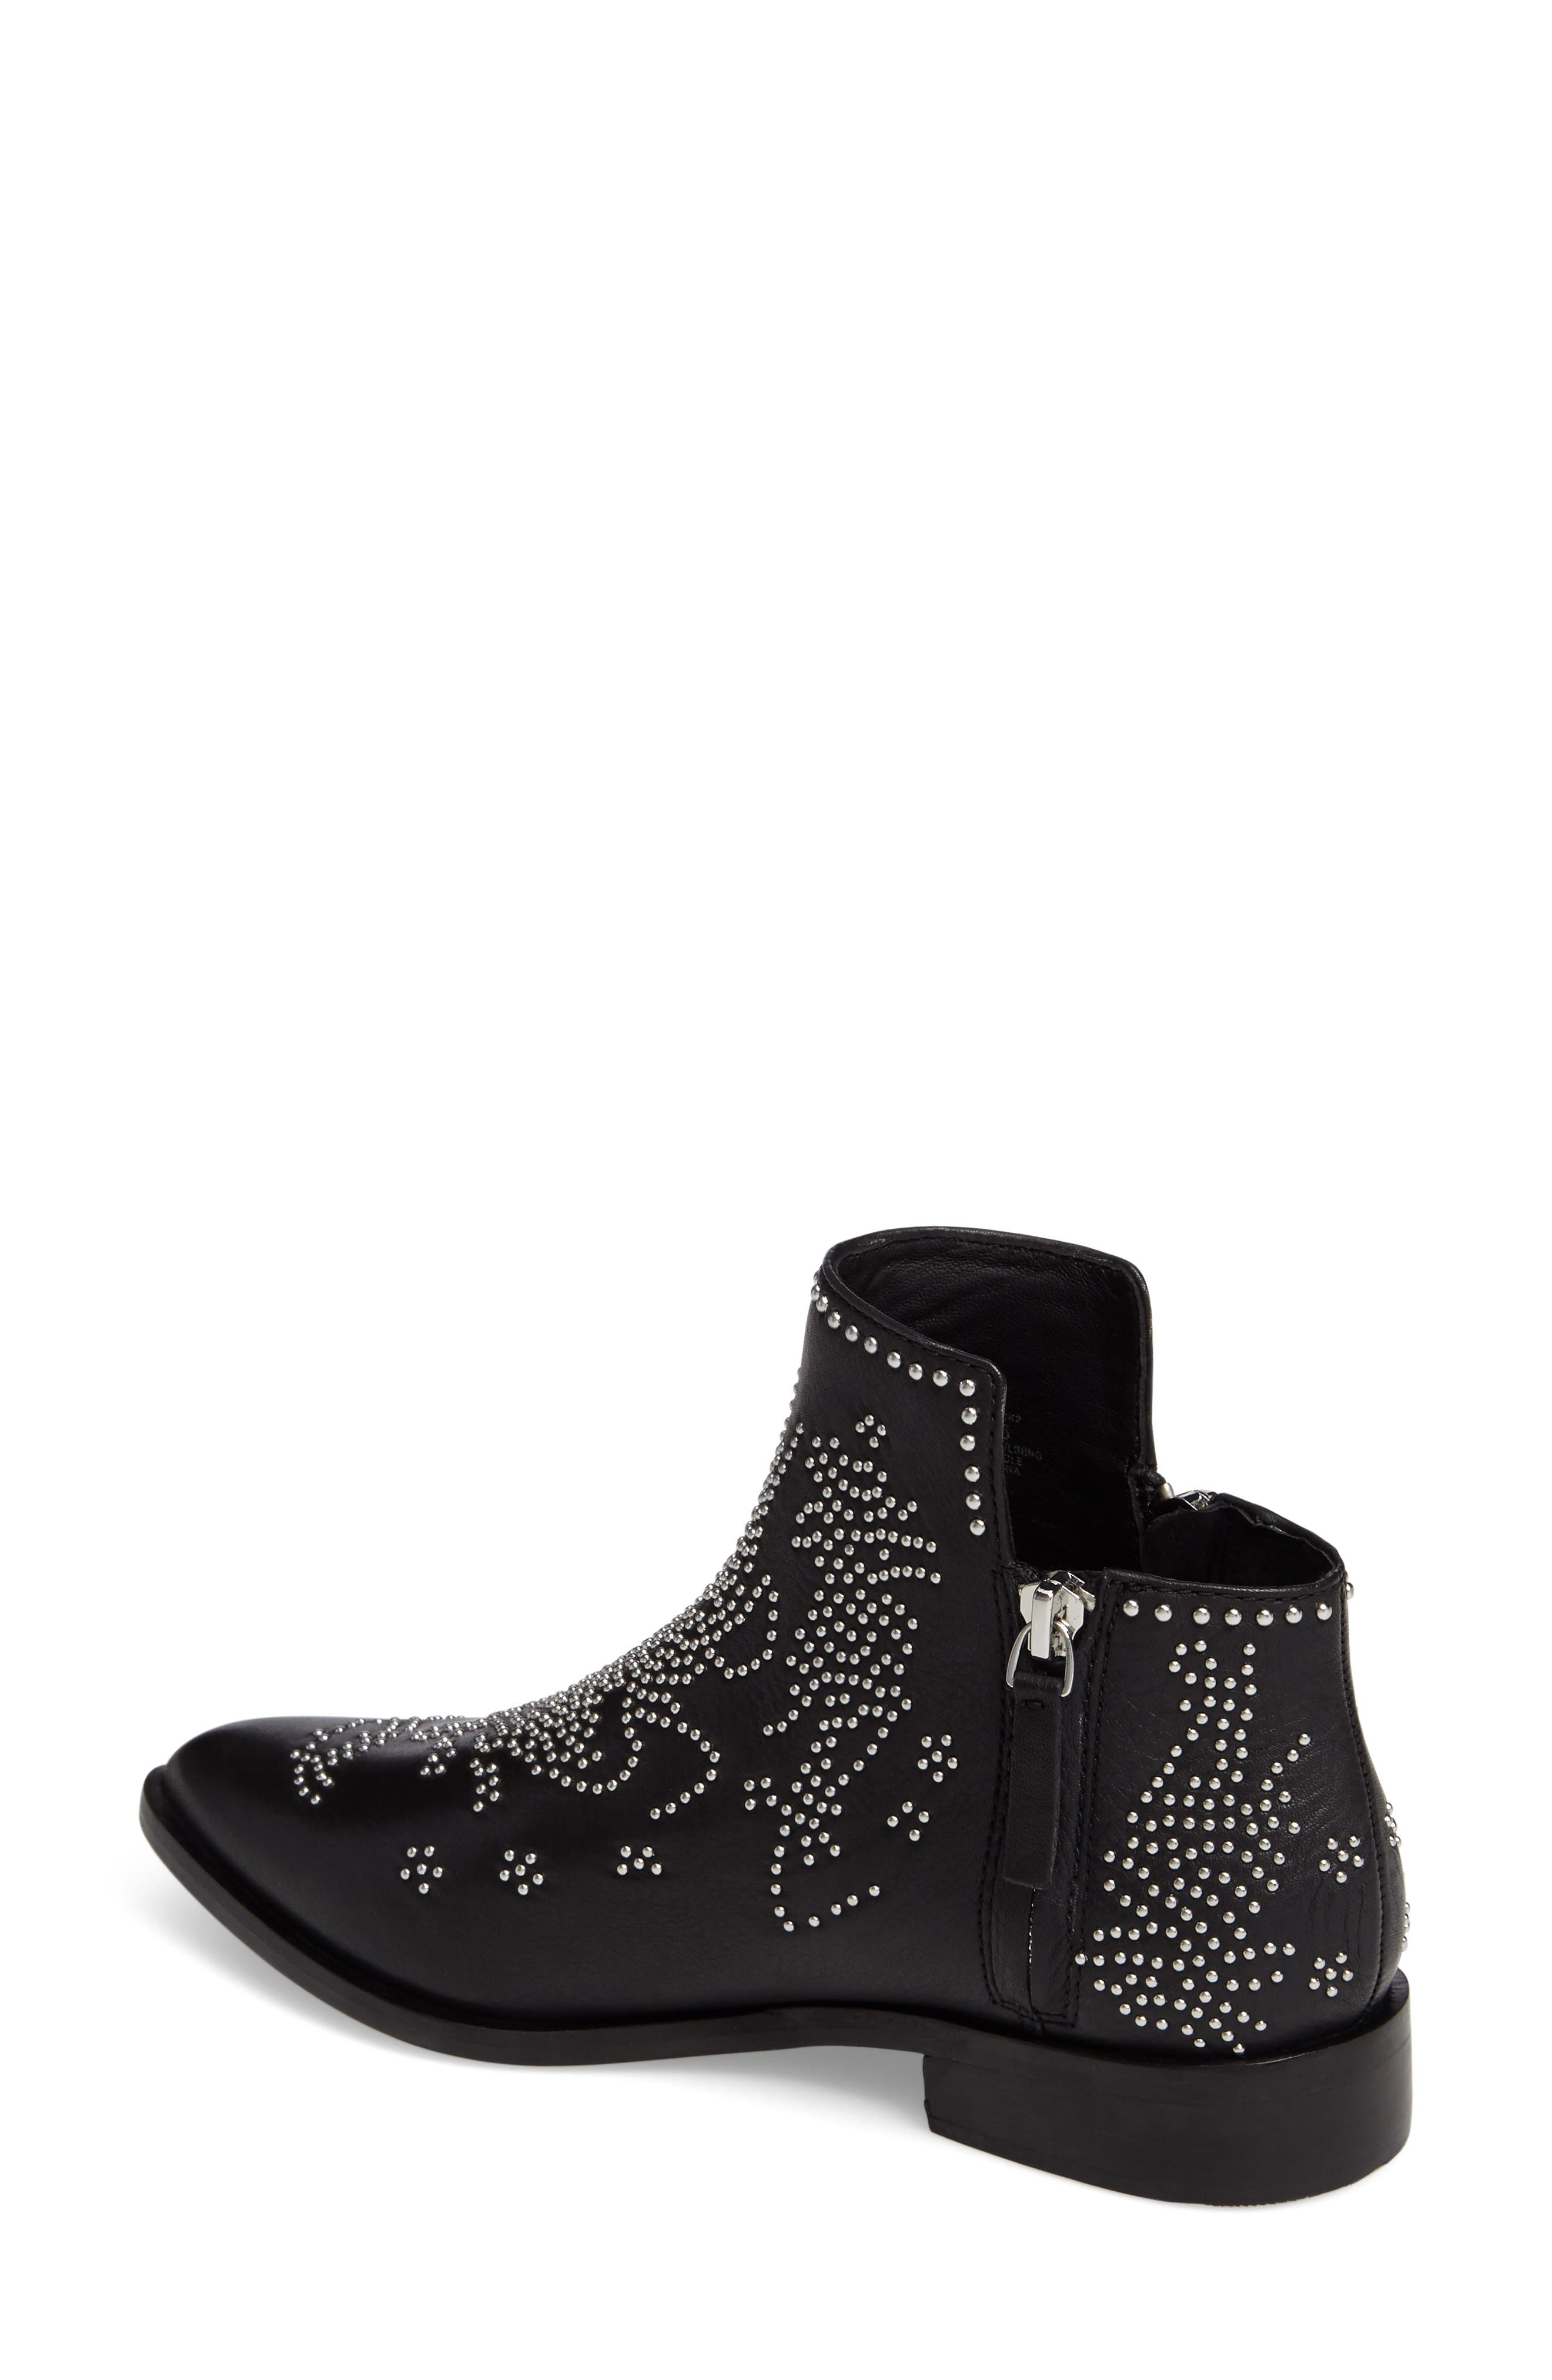 Callback2 Studded Bootie,                             Alternate thumbnail 2, color,                             Black Leather